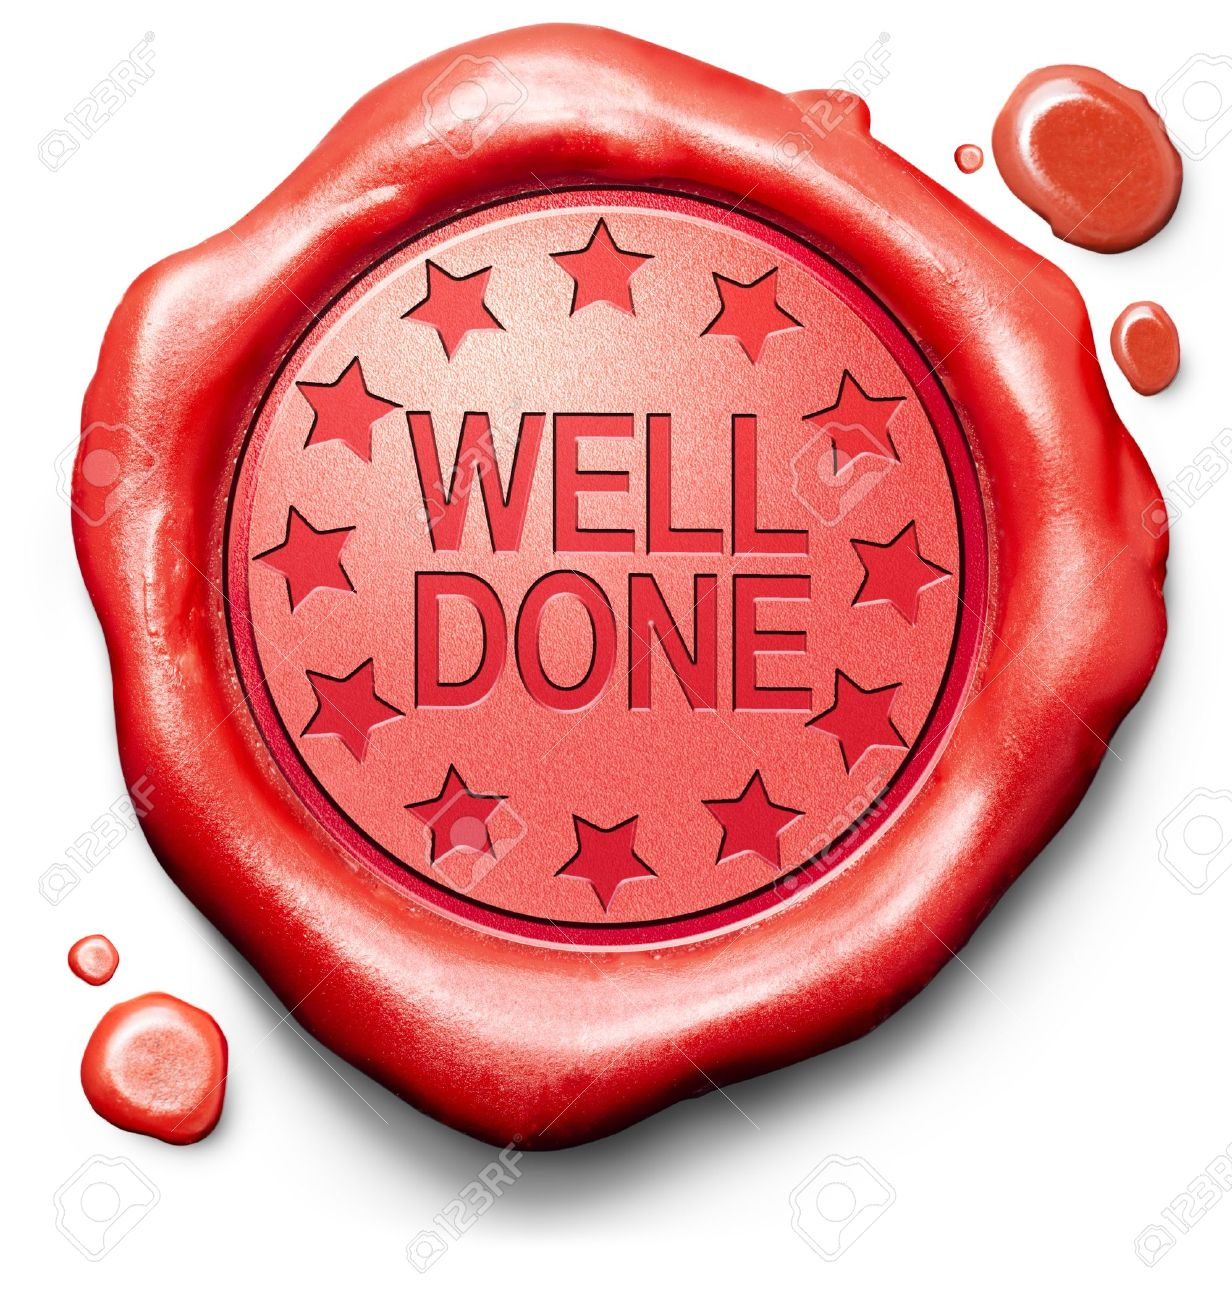 well done good job excellent perfomance great achievement thank you red icon stamp button or label Stock Photo - 20125648